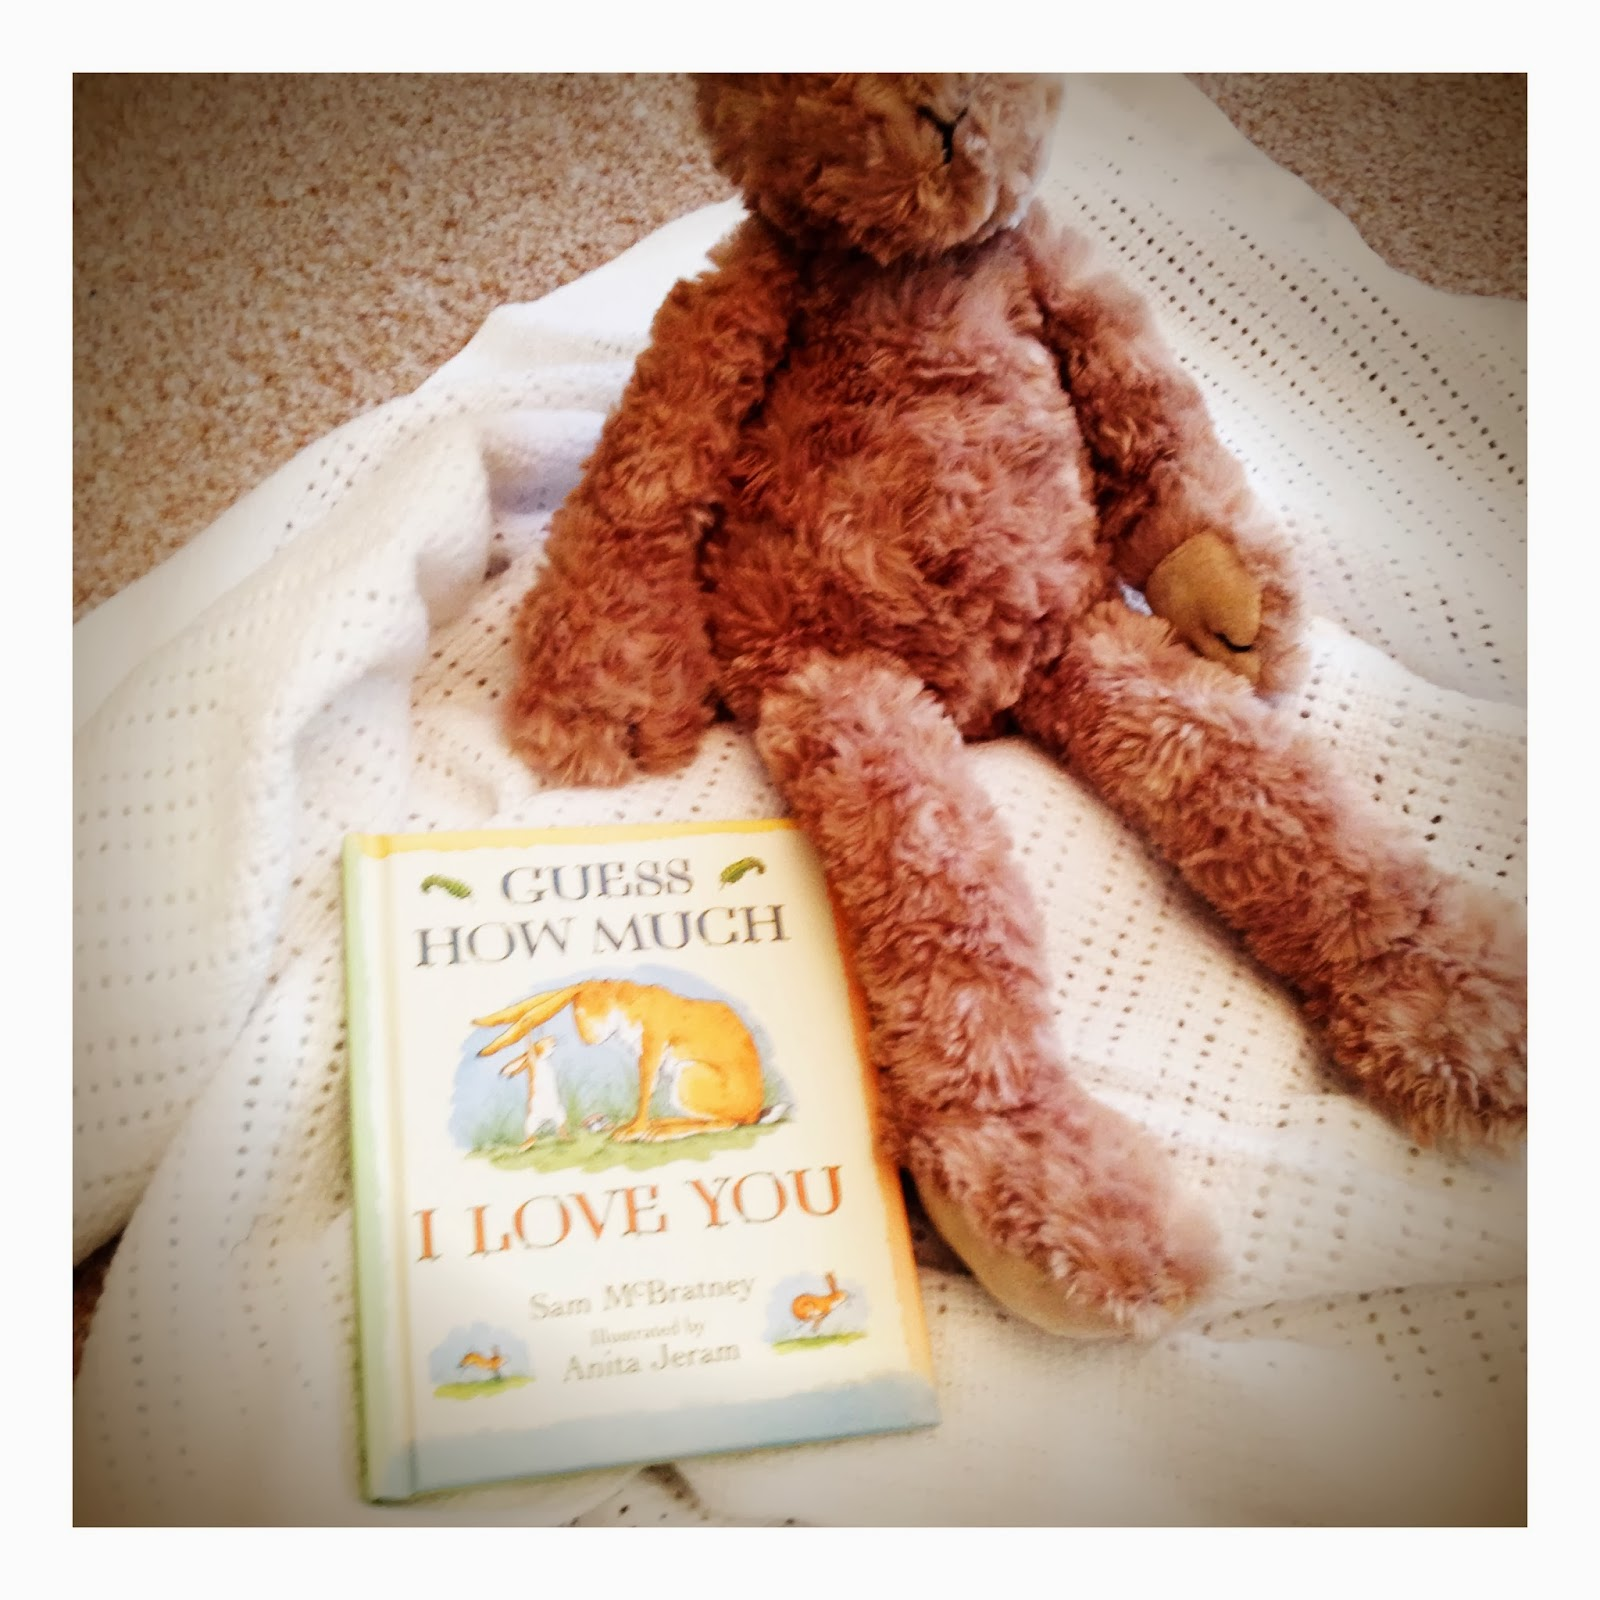 guess how much I love you | bookclub | classic baby books |V. I. BOOKCLUB | Build a classic library | Mamas VIB